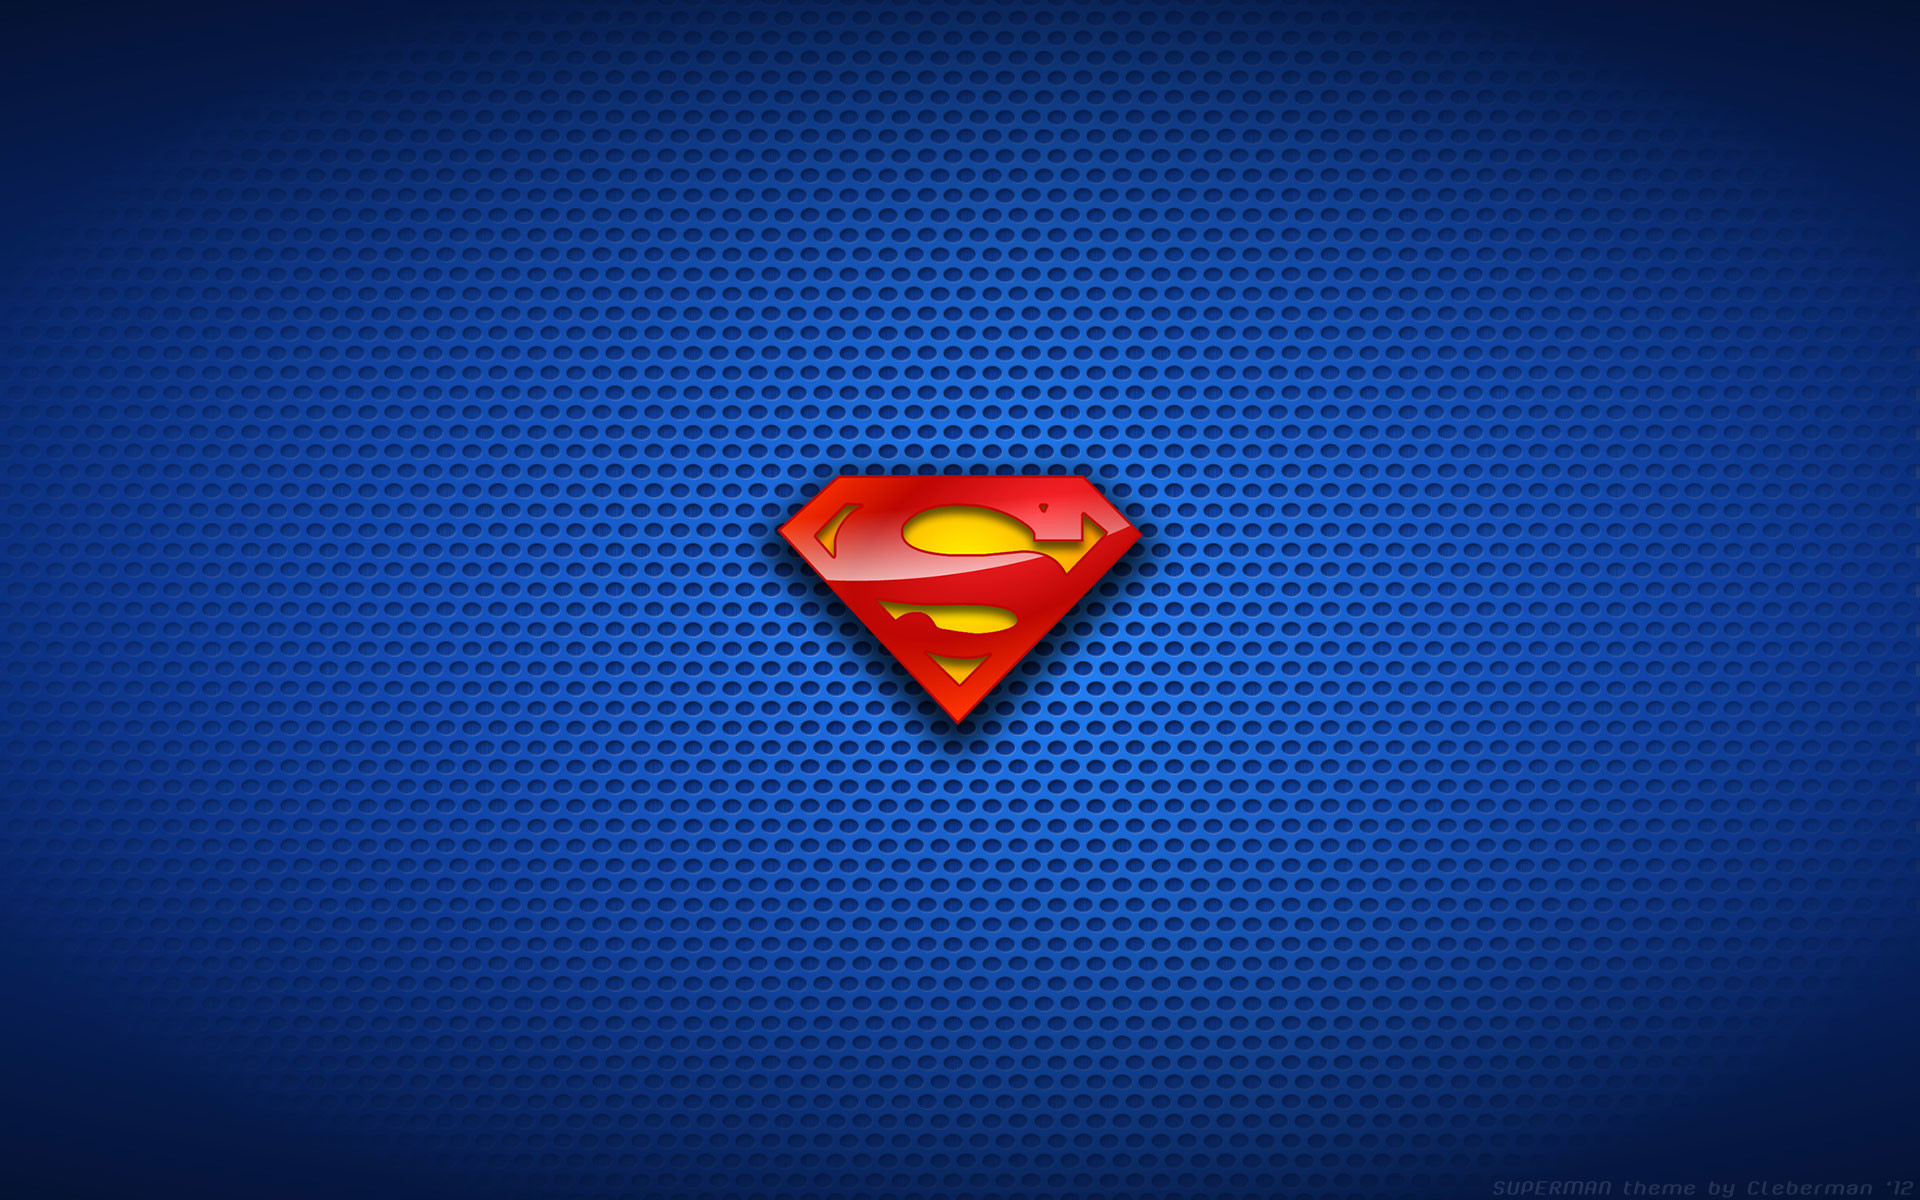 1920x1200 Superman Logo Wallpapers High Quality Resolution As Wallpaper HD